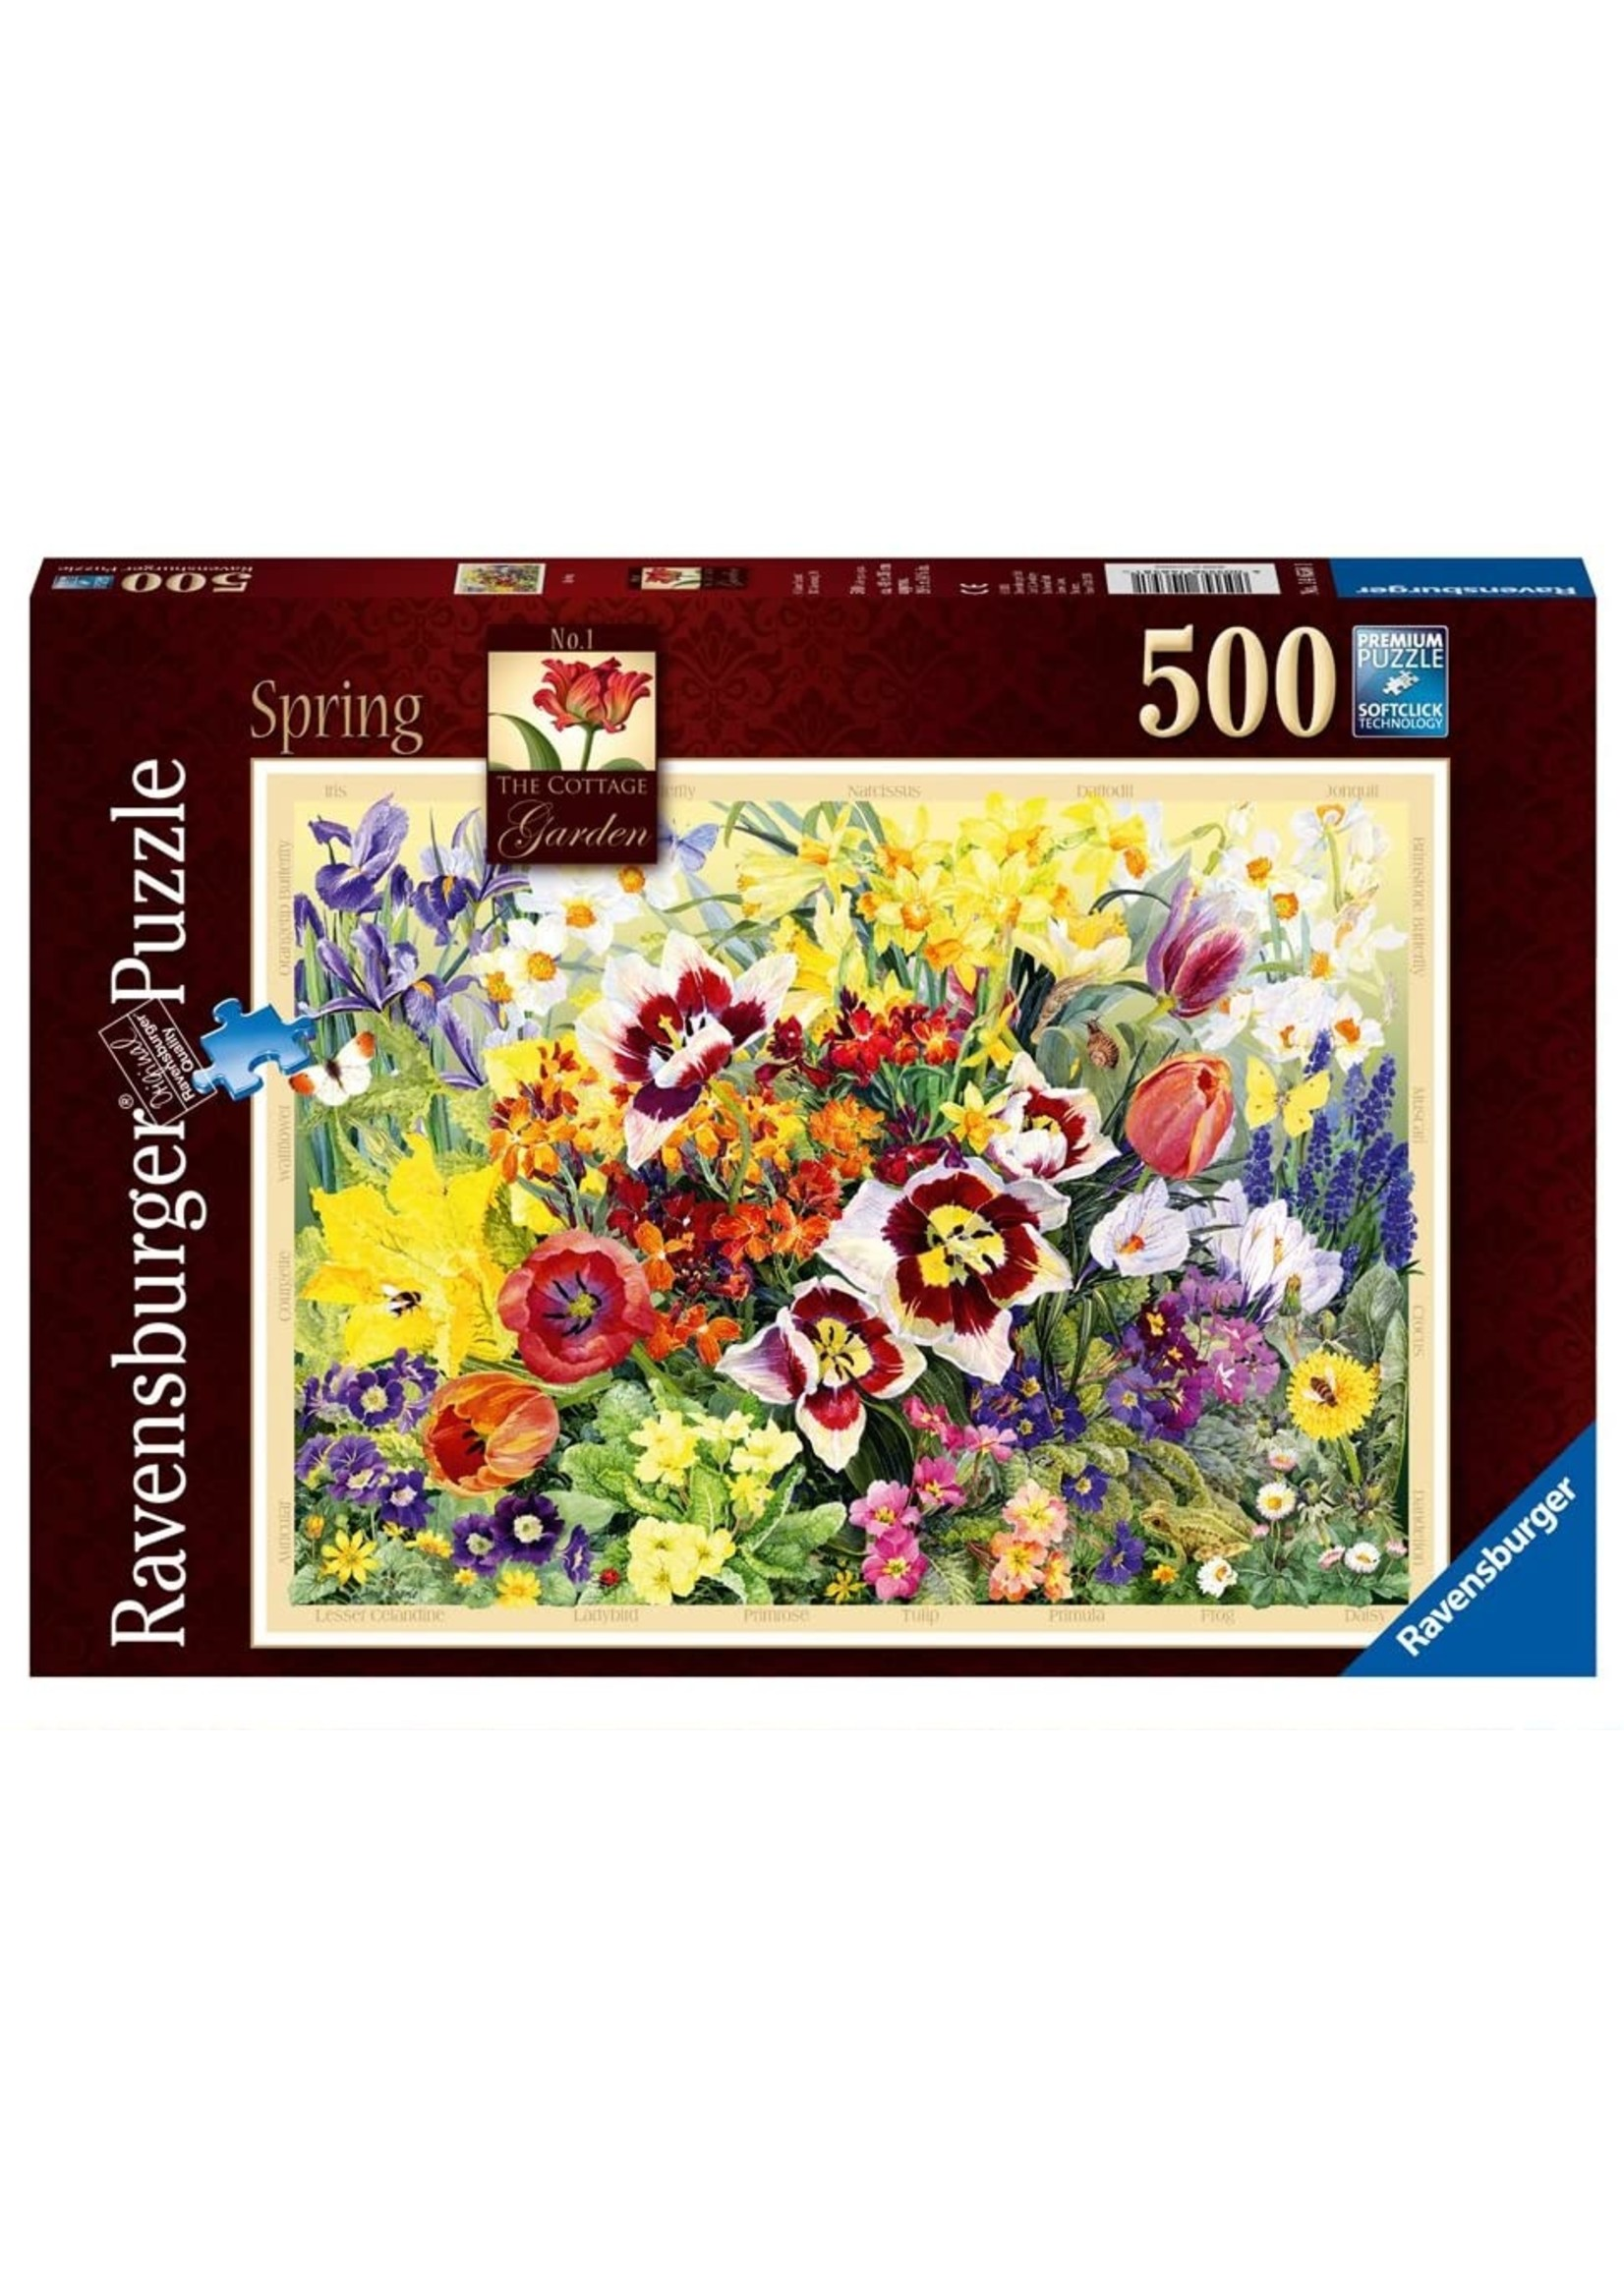 Puzzle: The Cottage Garden No 1, Spring